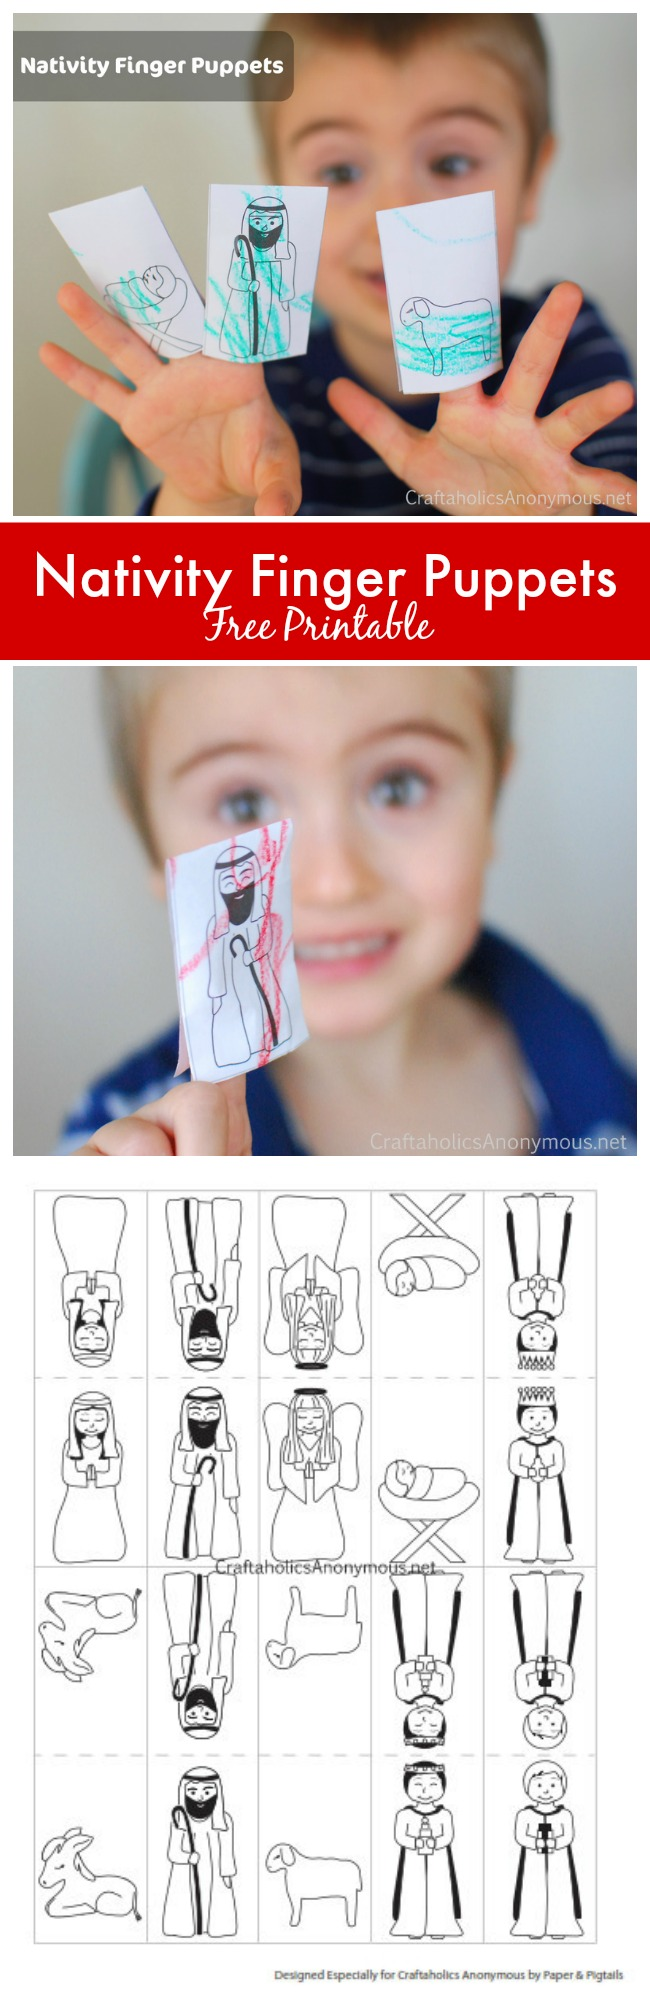 Nativity Finger Puppet printable